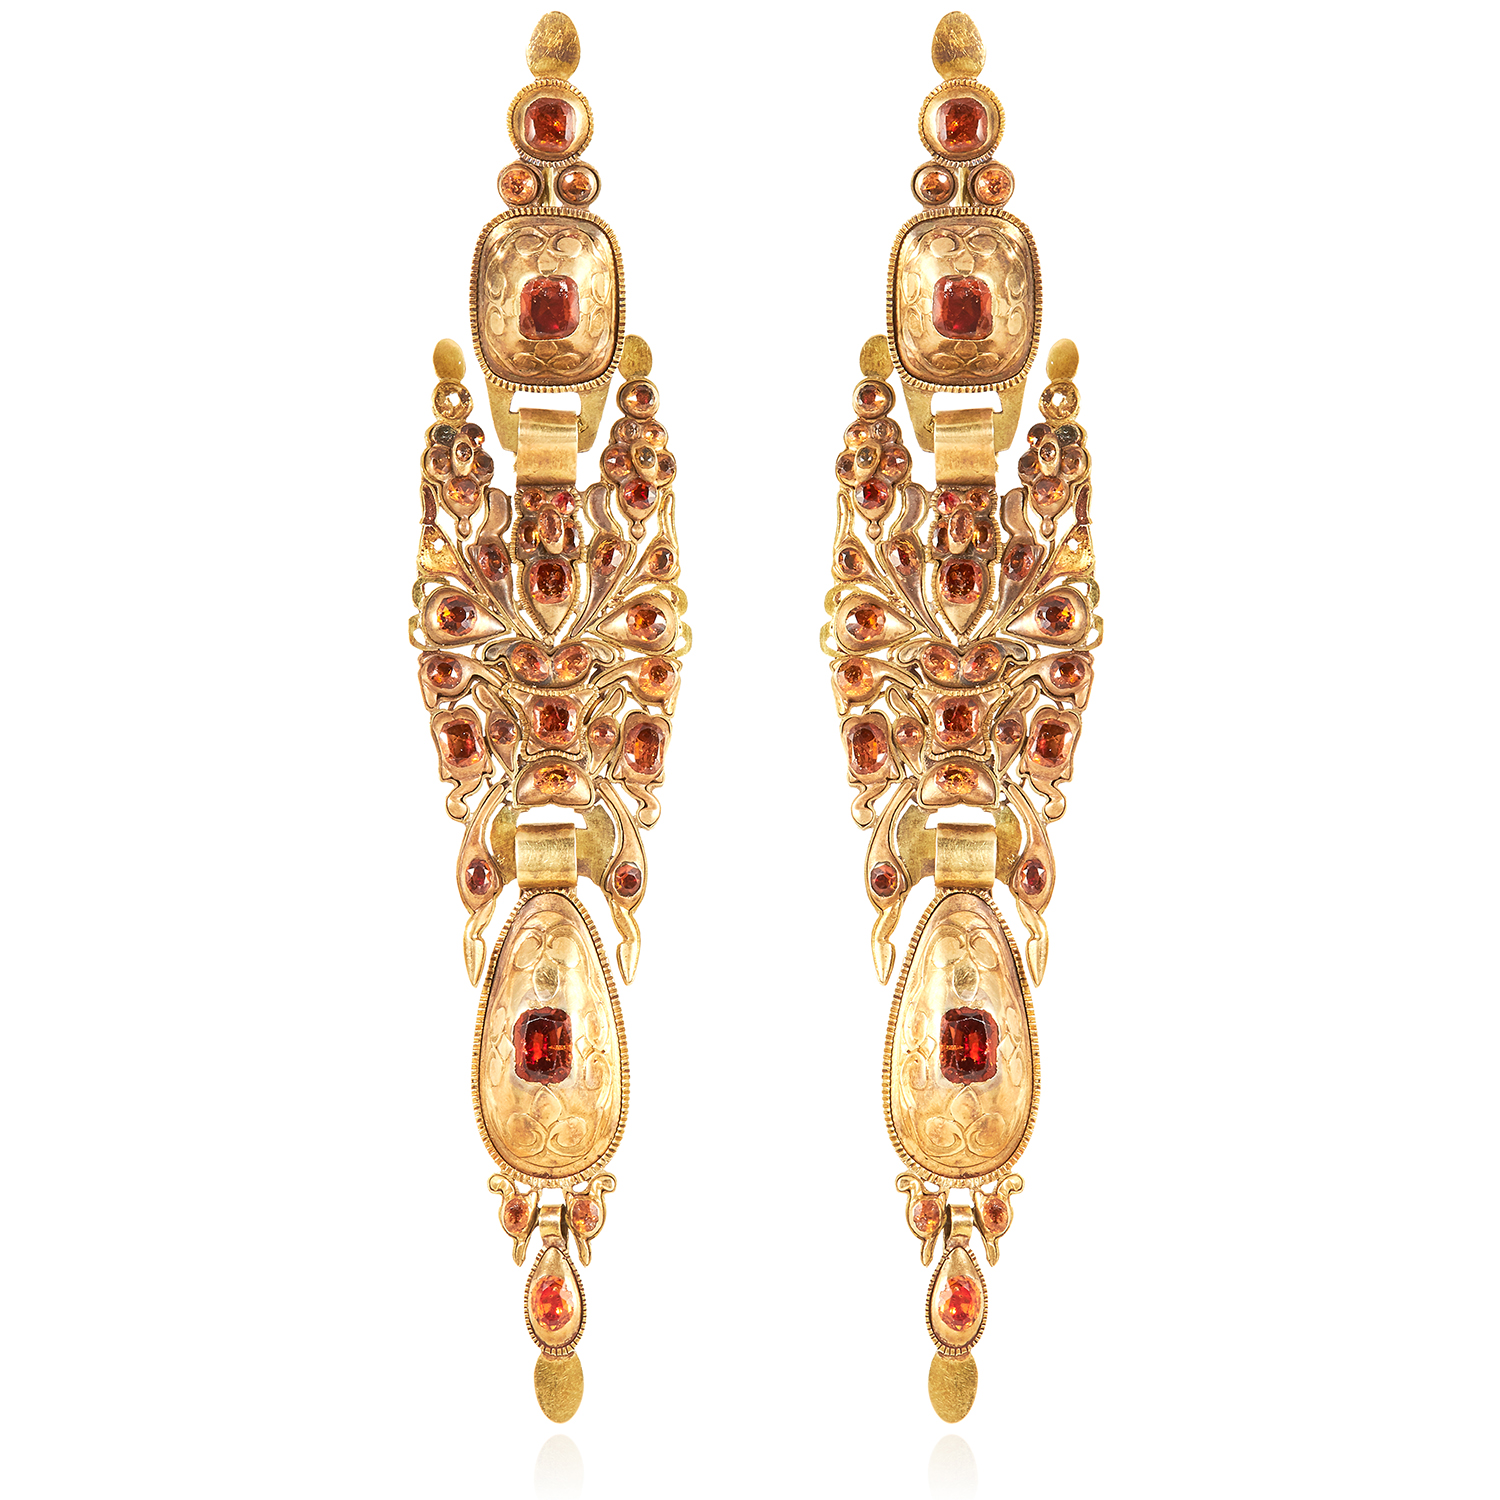 A PAIR OF SPANISH HESSONITE GARNET EARRINGS, CATALAN LATE 18TH CENTURY in high carat yellow gold